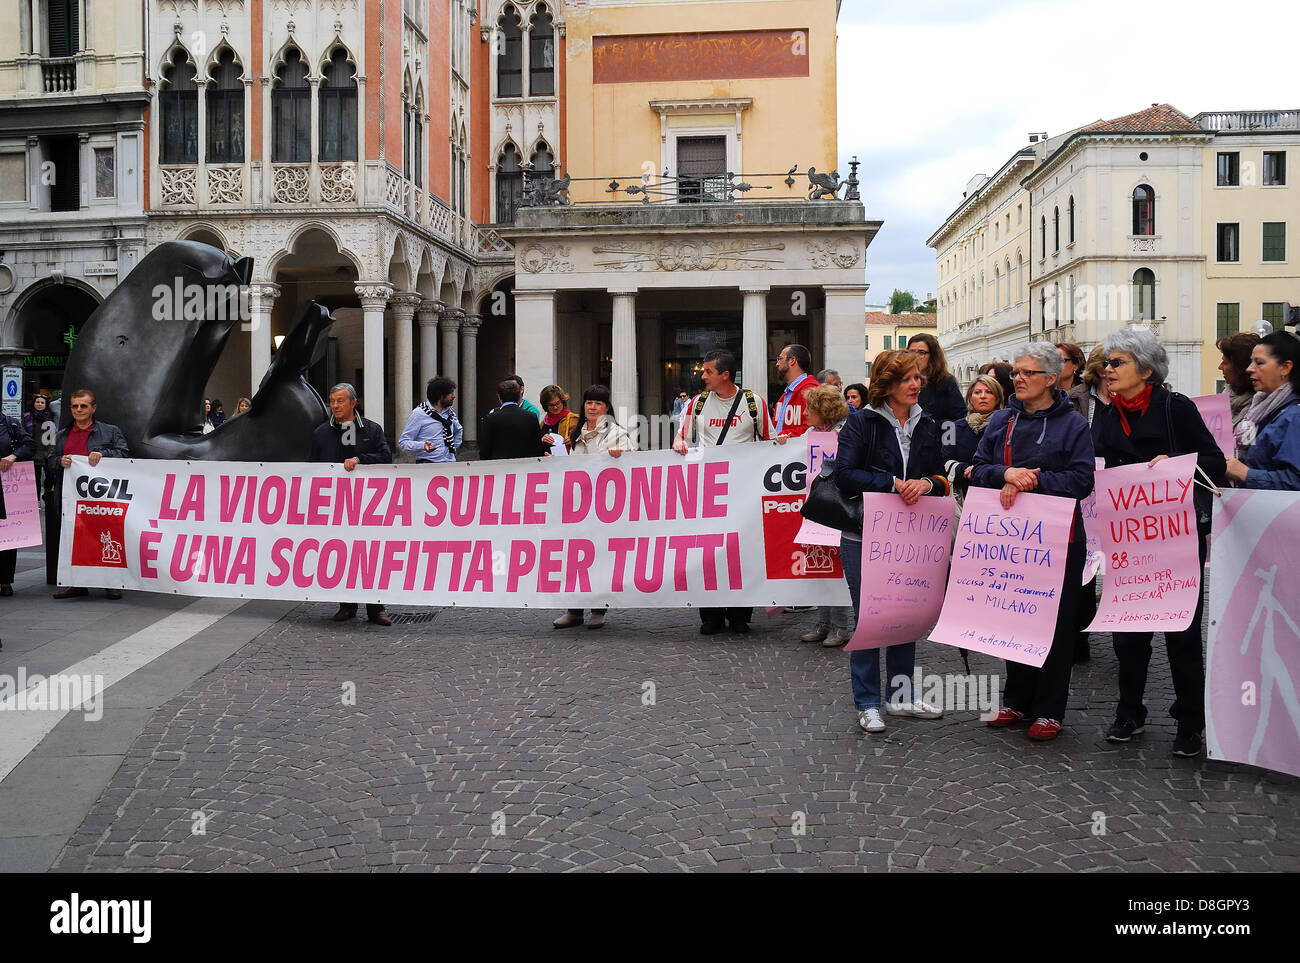 Tuesday, May 28, 2013, Padova, Italy: flash mob against violence on women. 124 women killed in 2012, 29 women killed - Stock Image